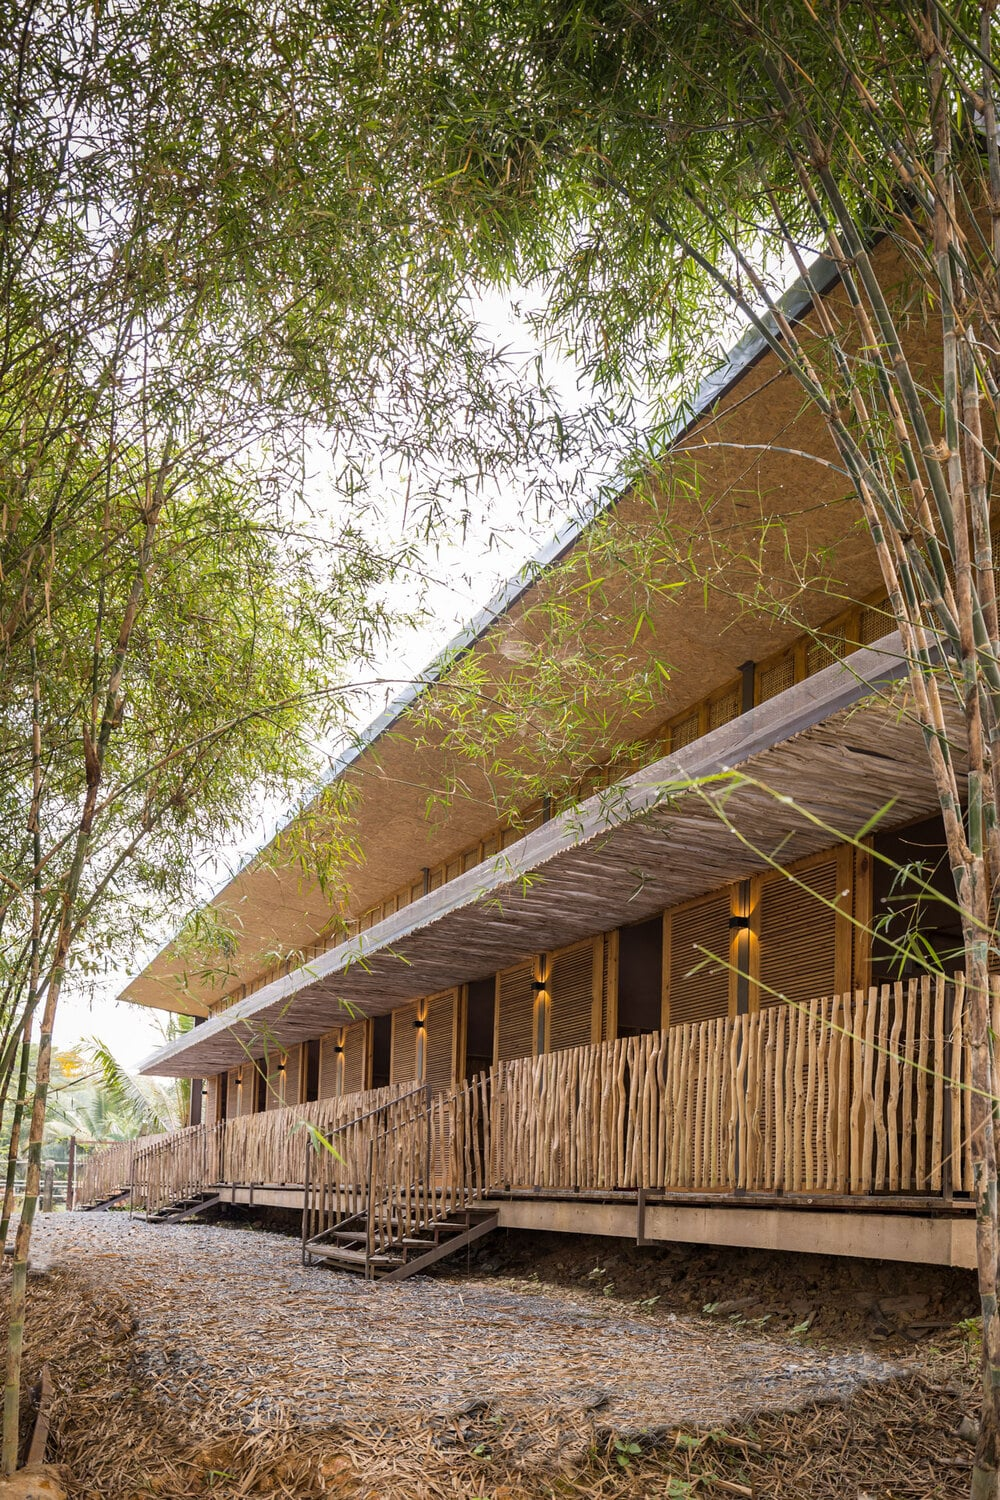 This is a look at the front of the dormitory with bamboo railings on the front porch.